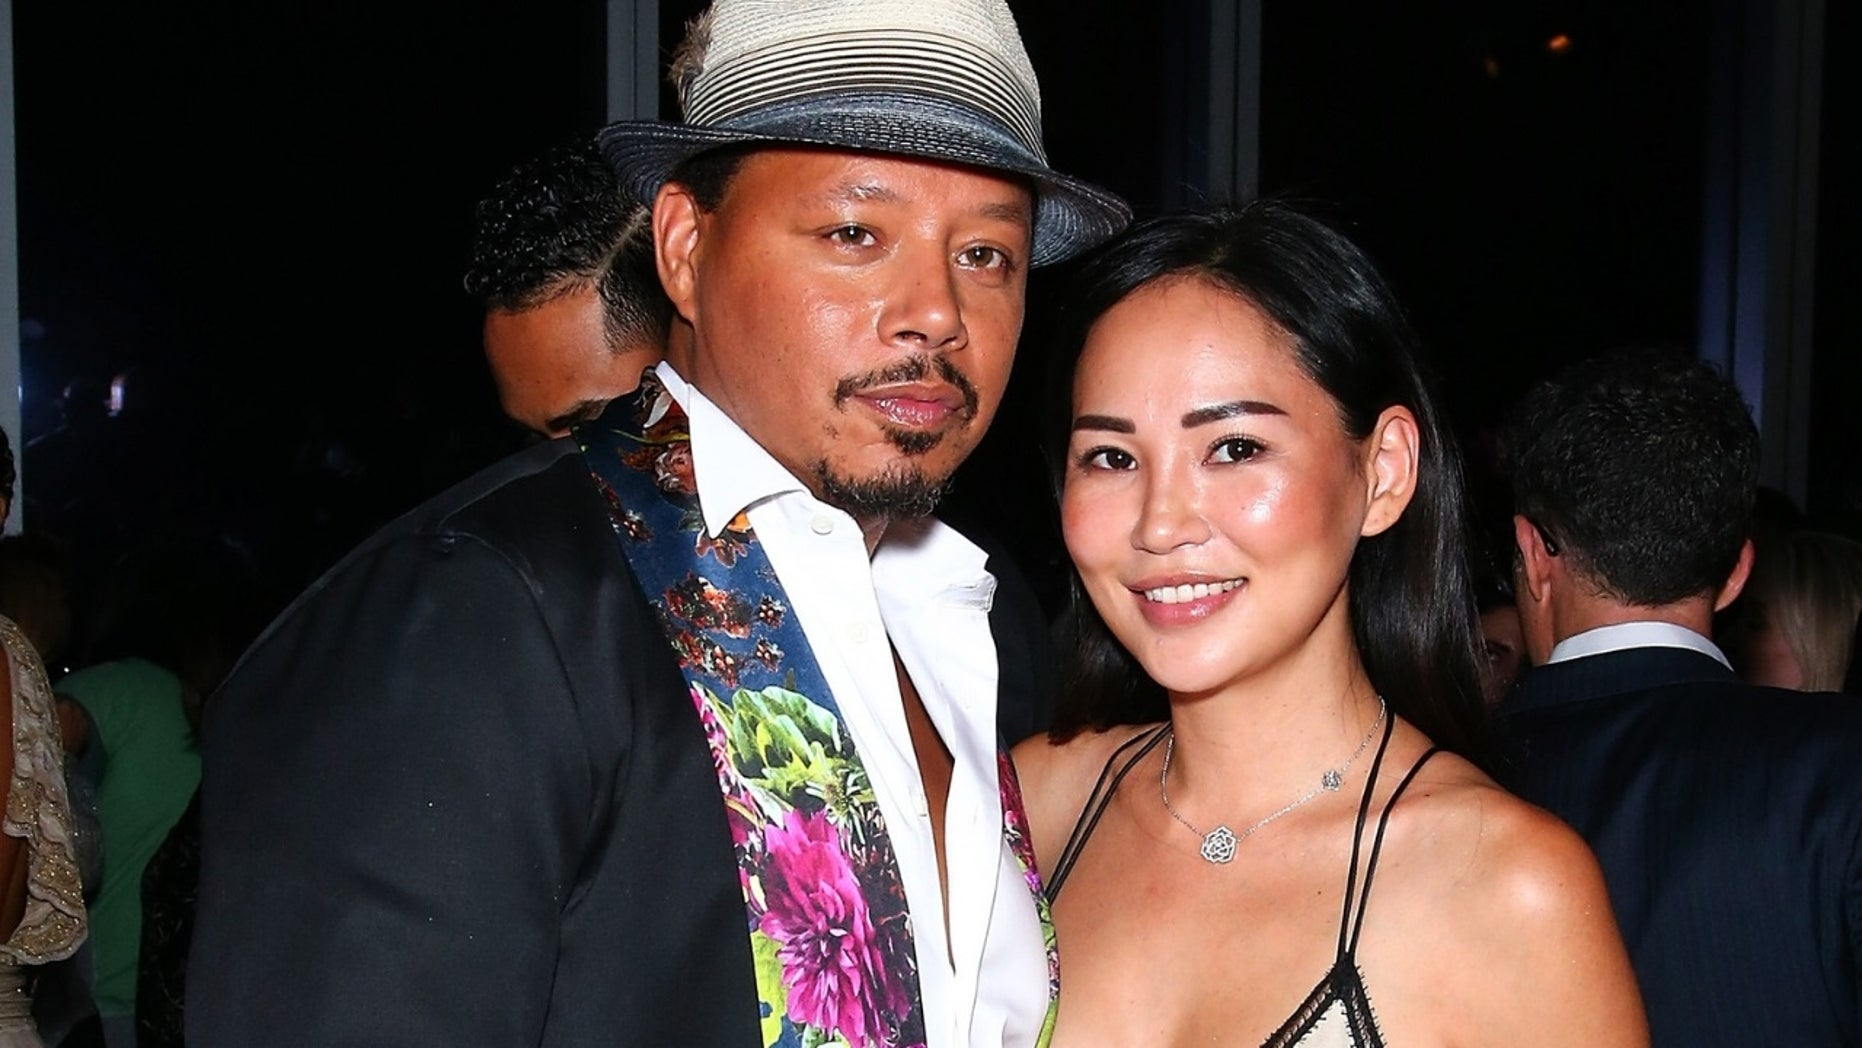 Terrence Howard is engaged to ex-wife Mira Pak